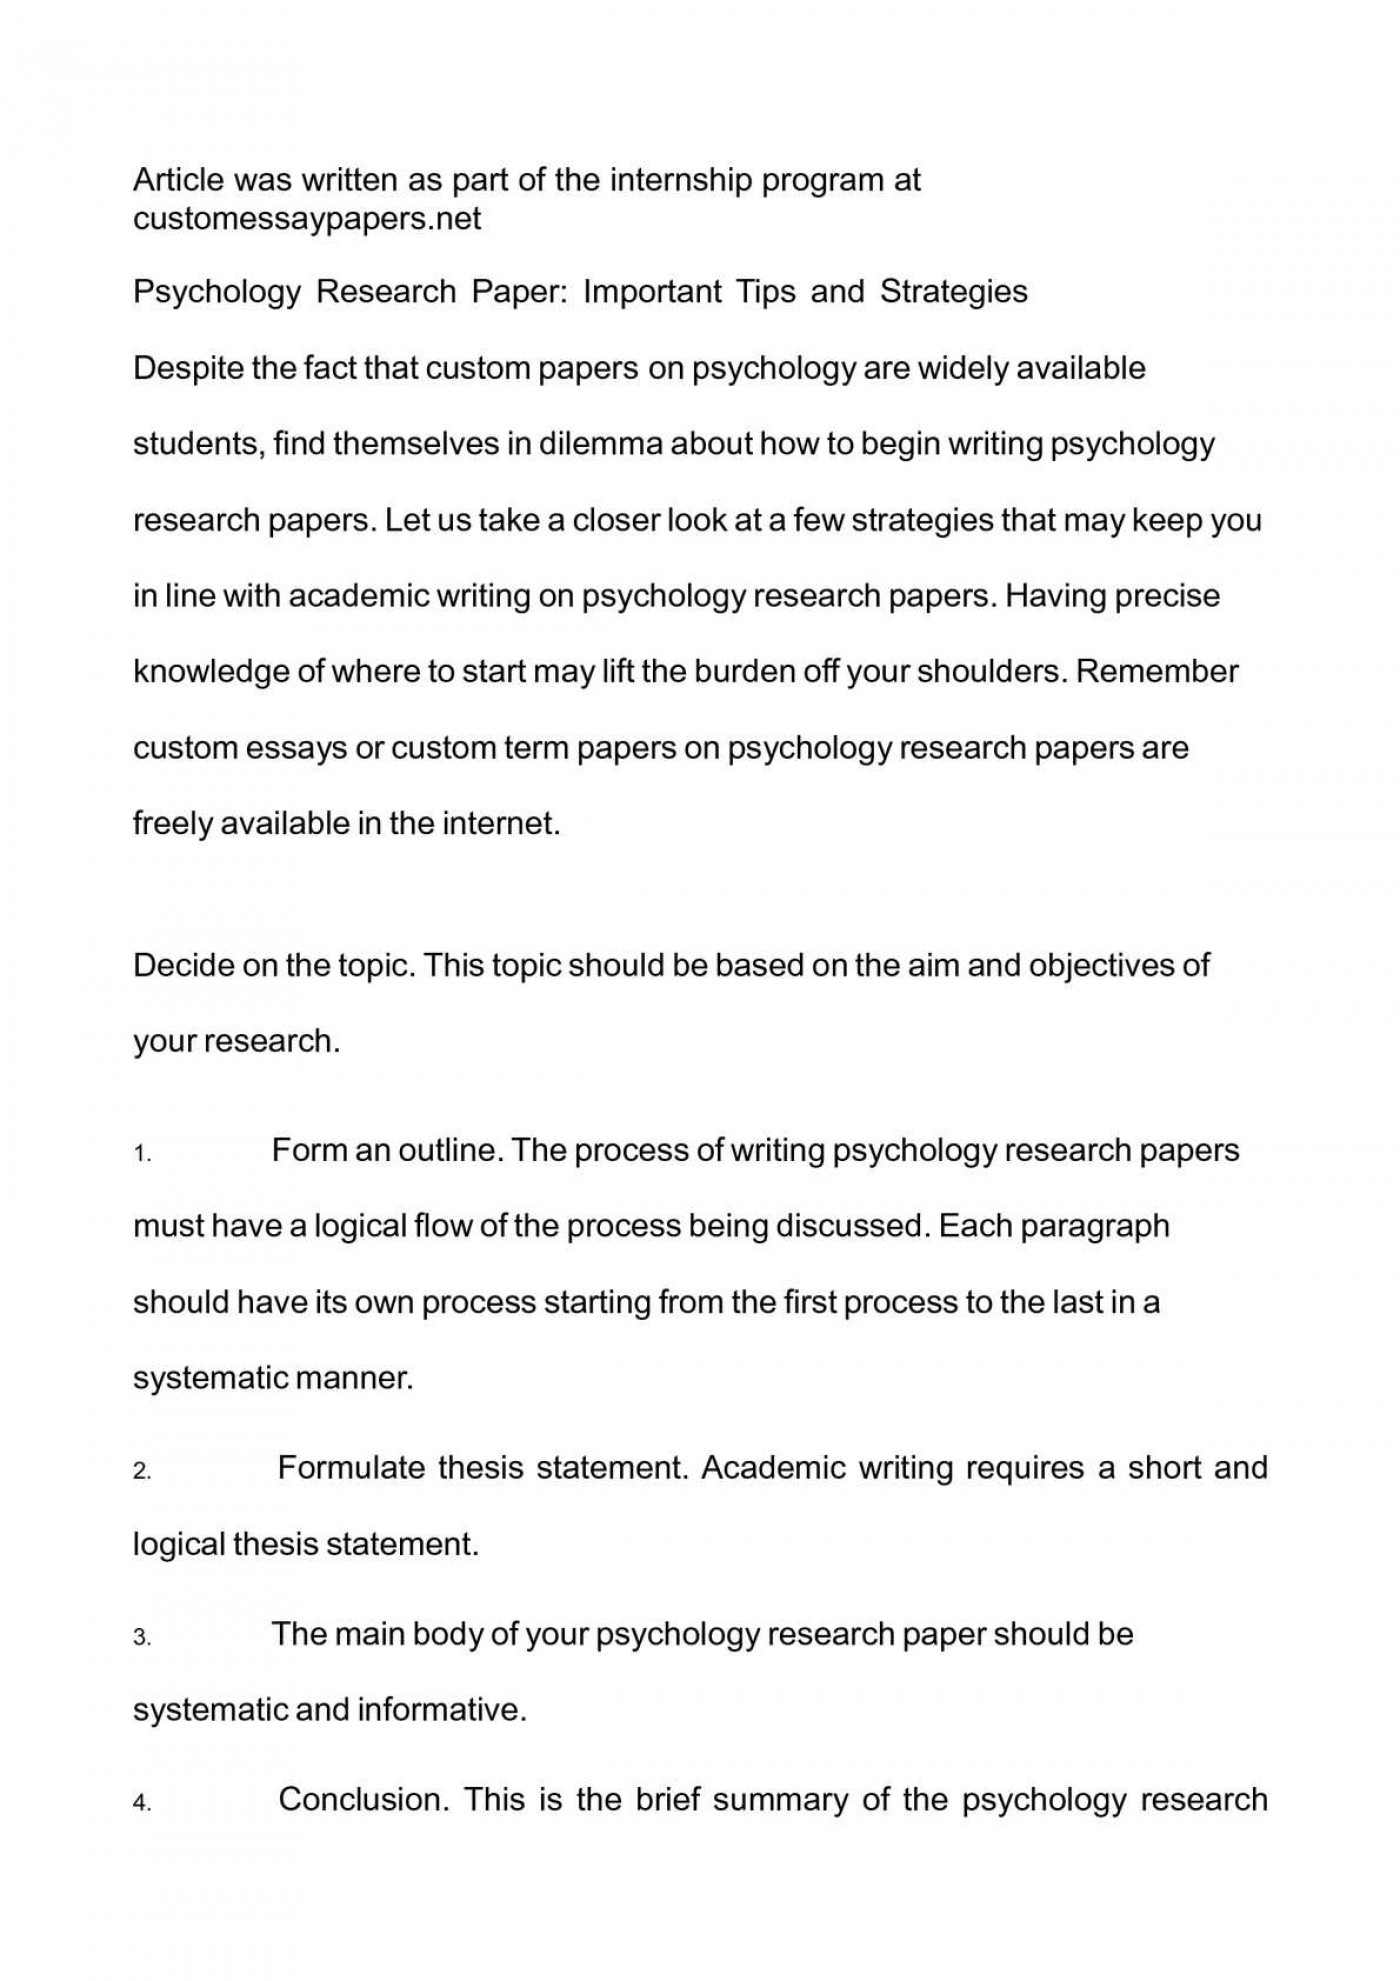 017 P1 Research Paper Psychology Topics Awesome List Topic Ideas 1400